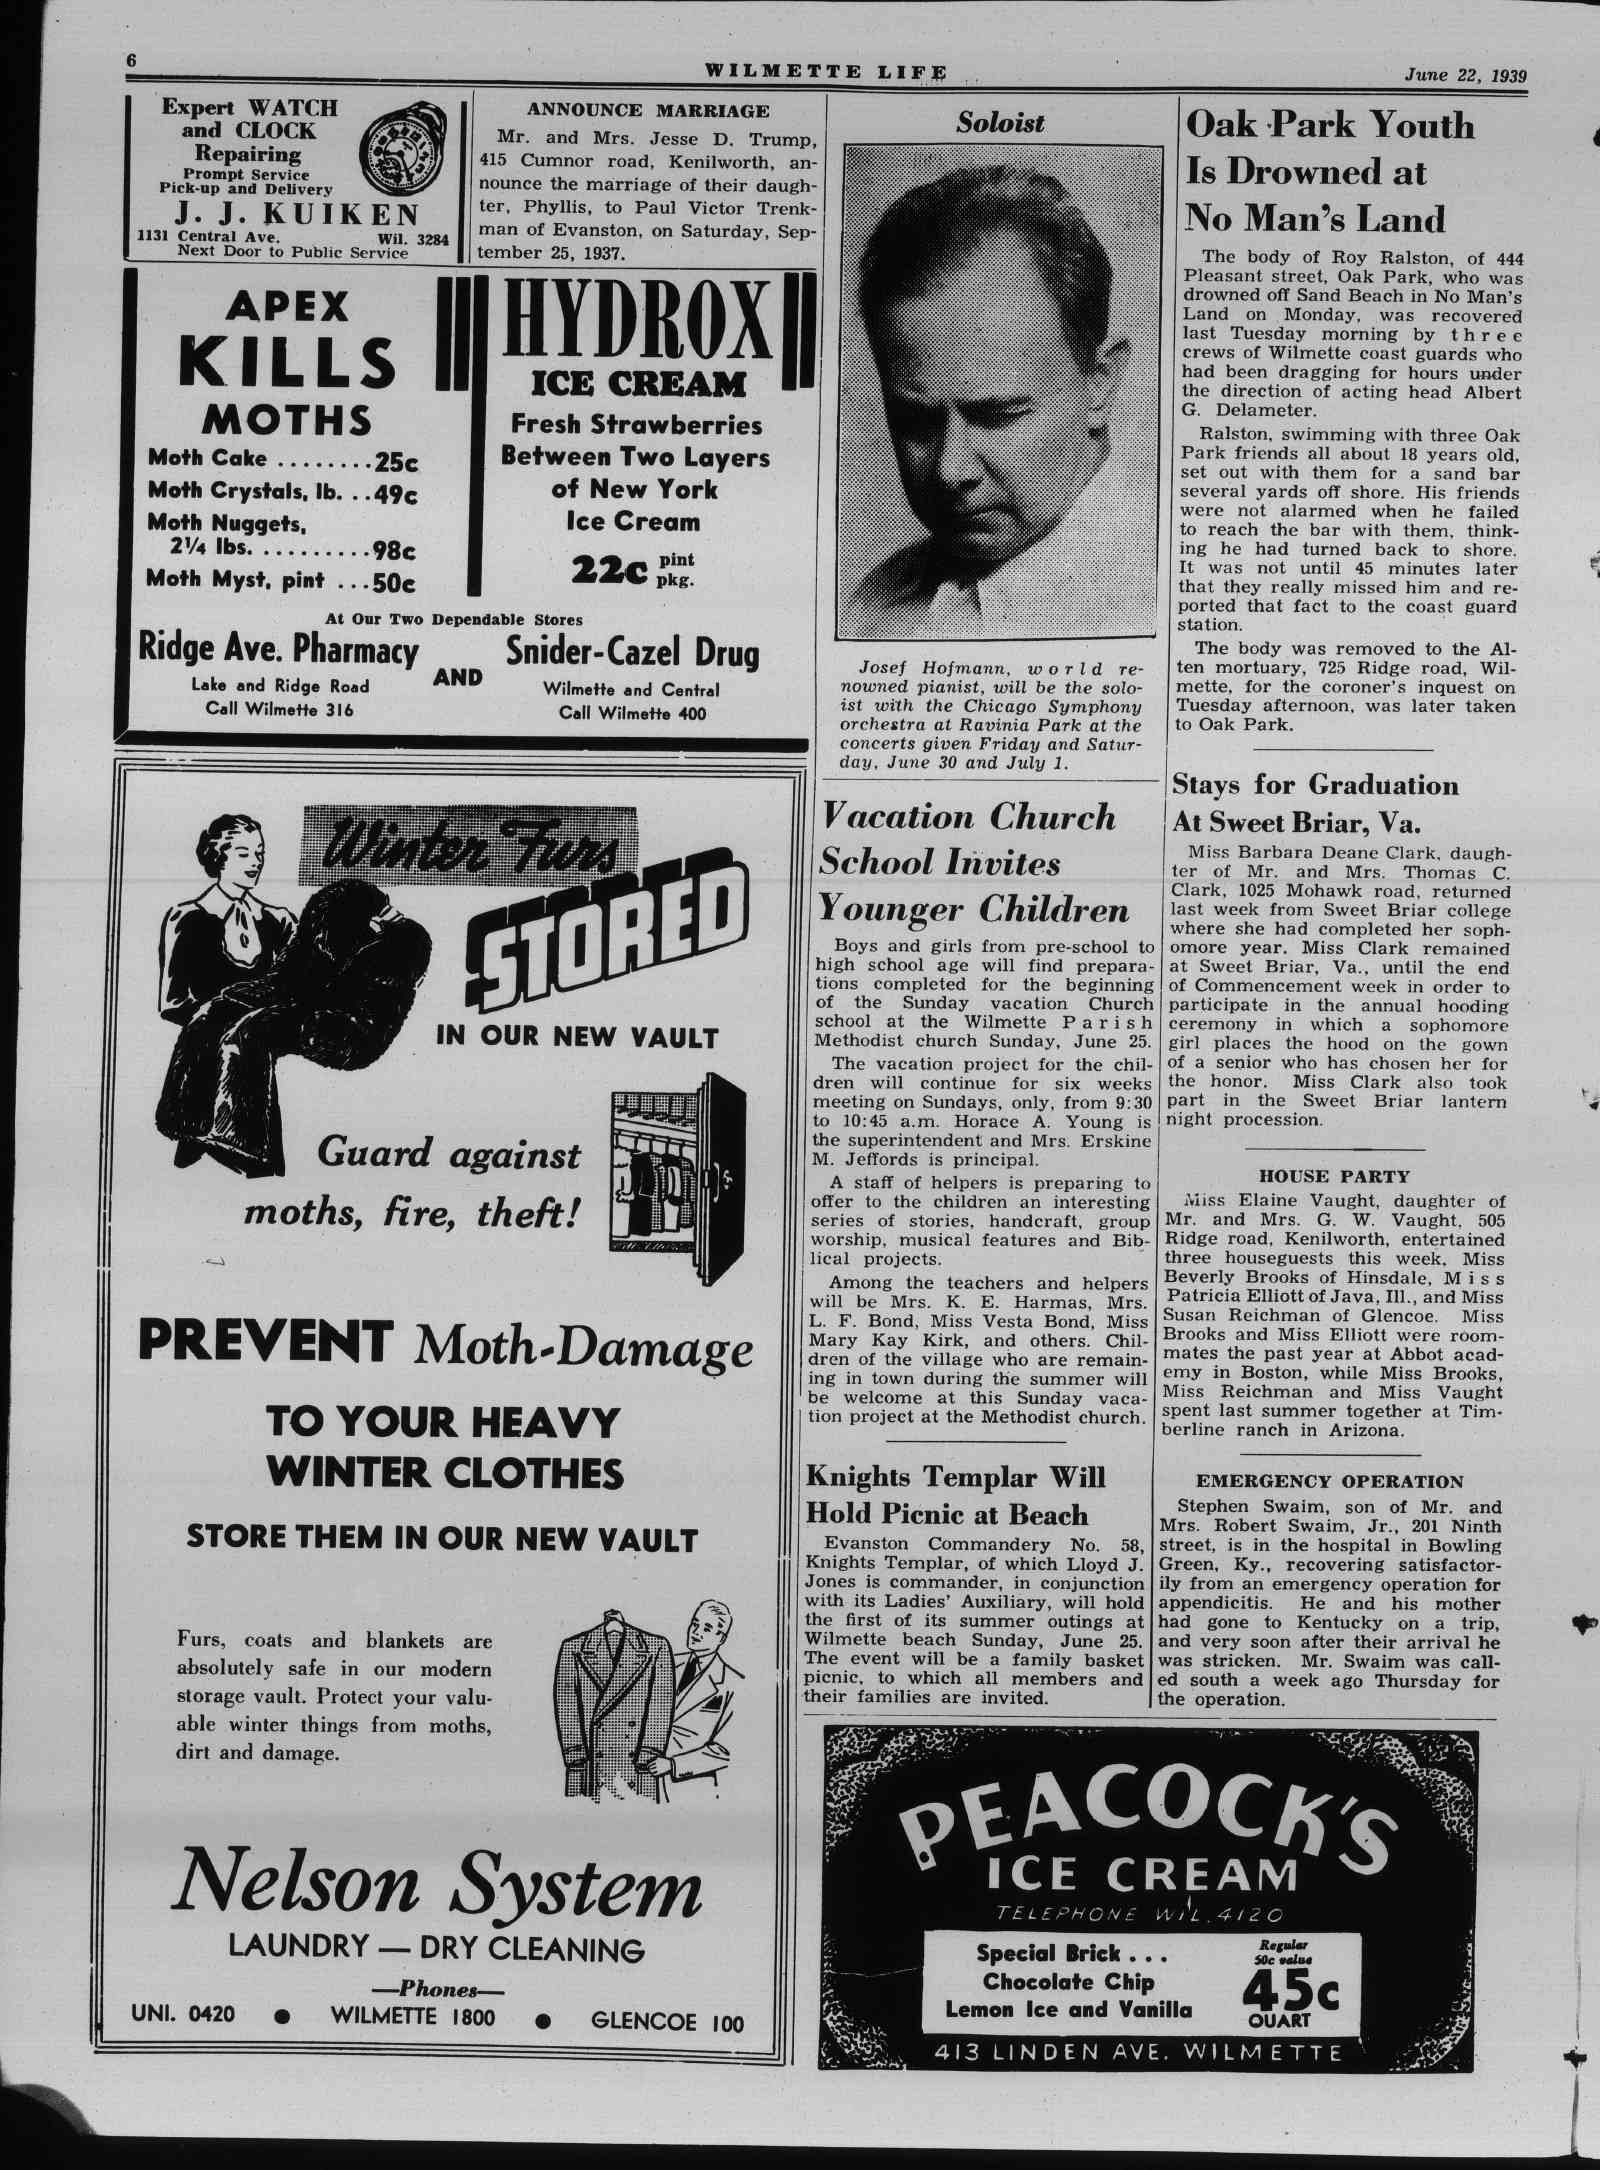 Wilmette Life (Wilmette, Illinois), 22 Jun 1939